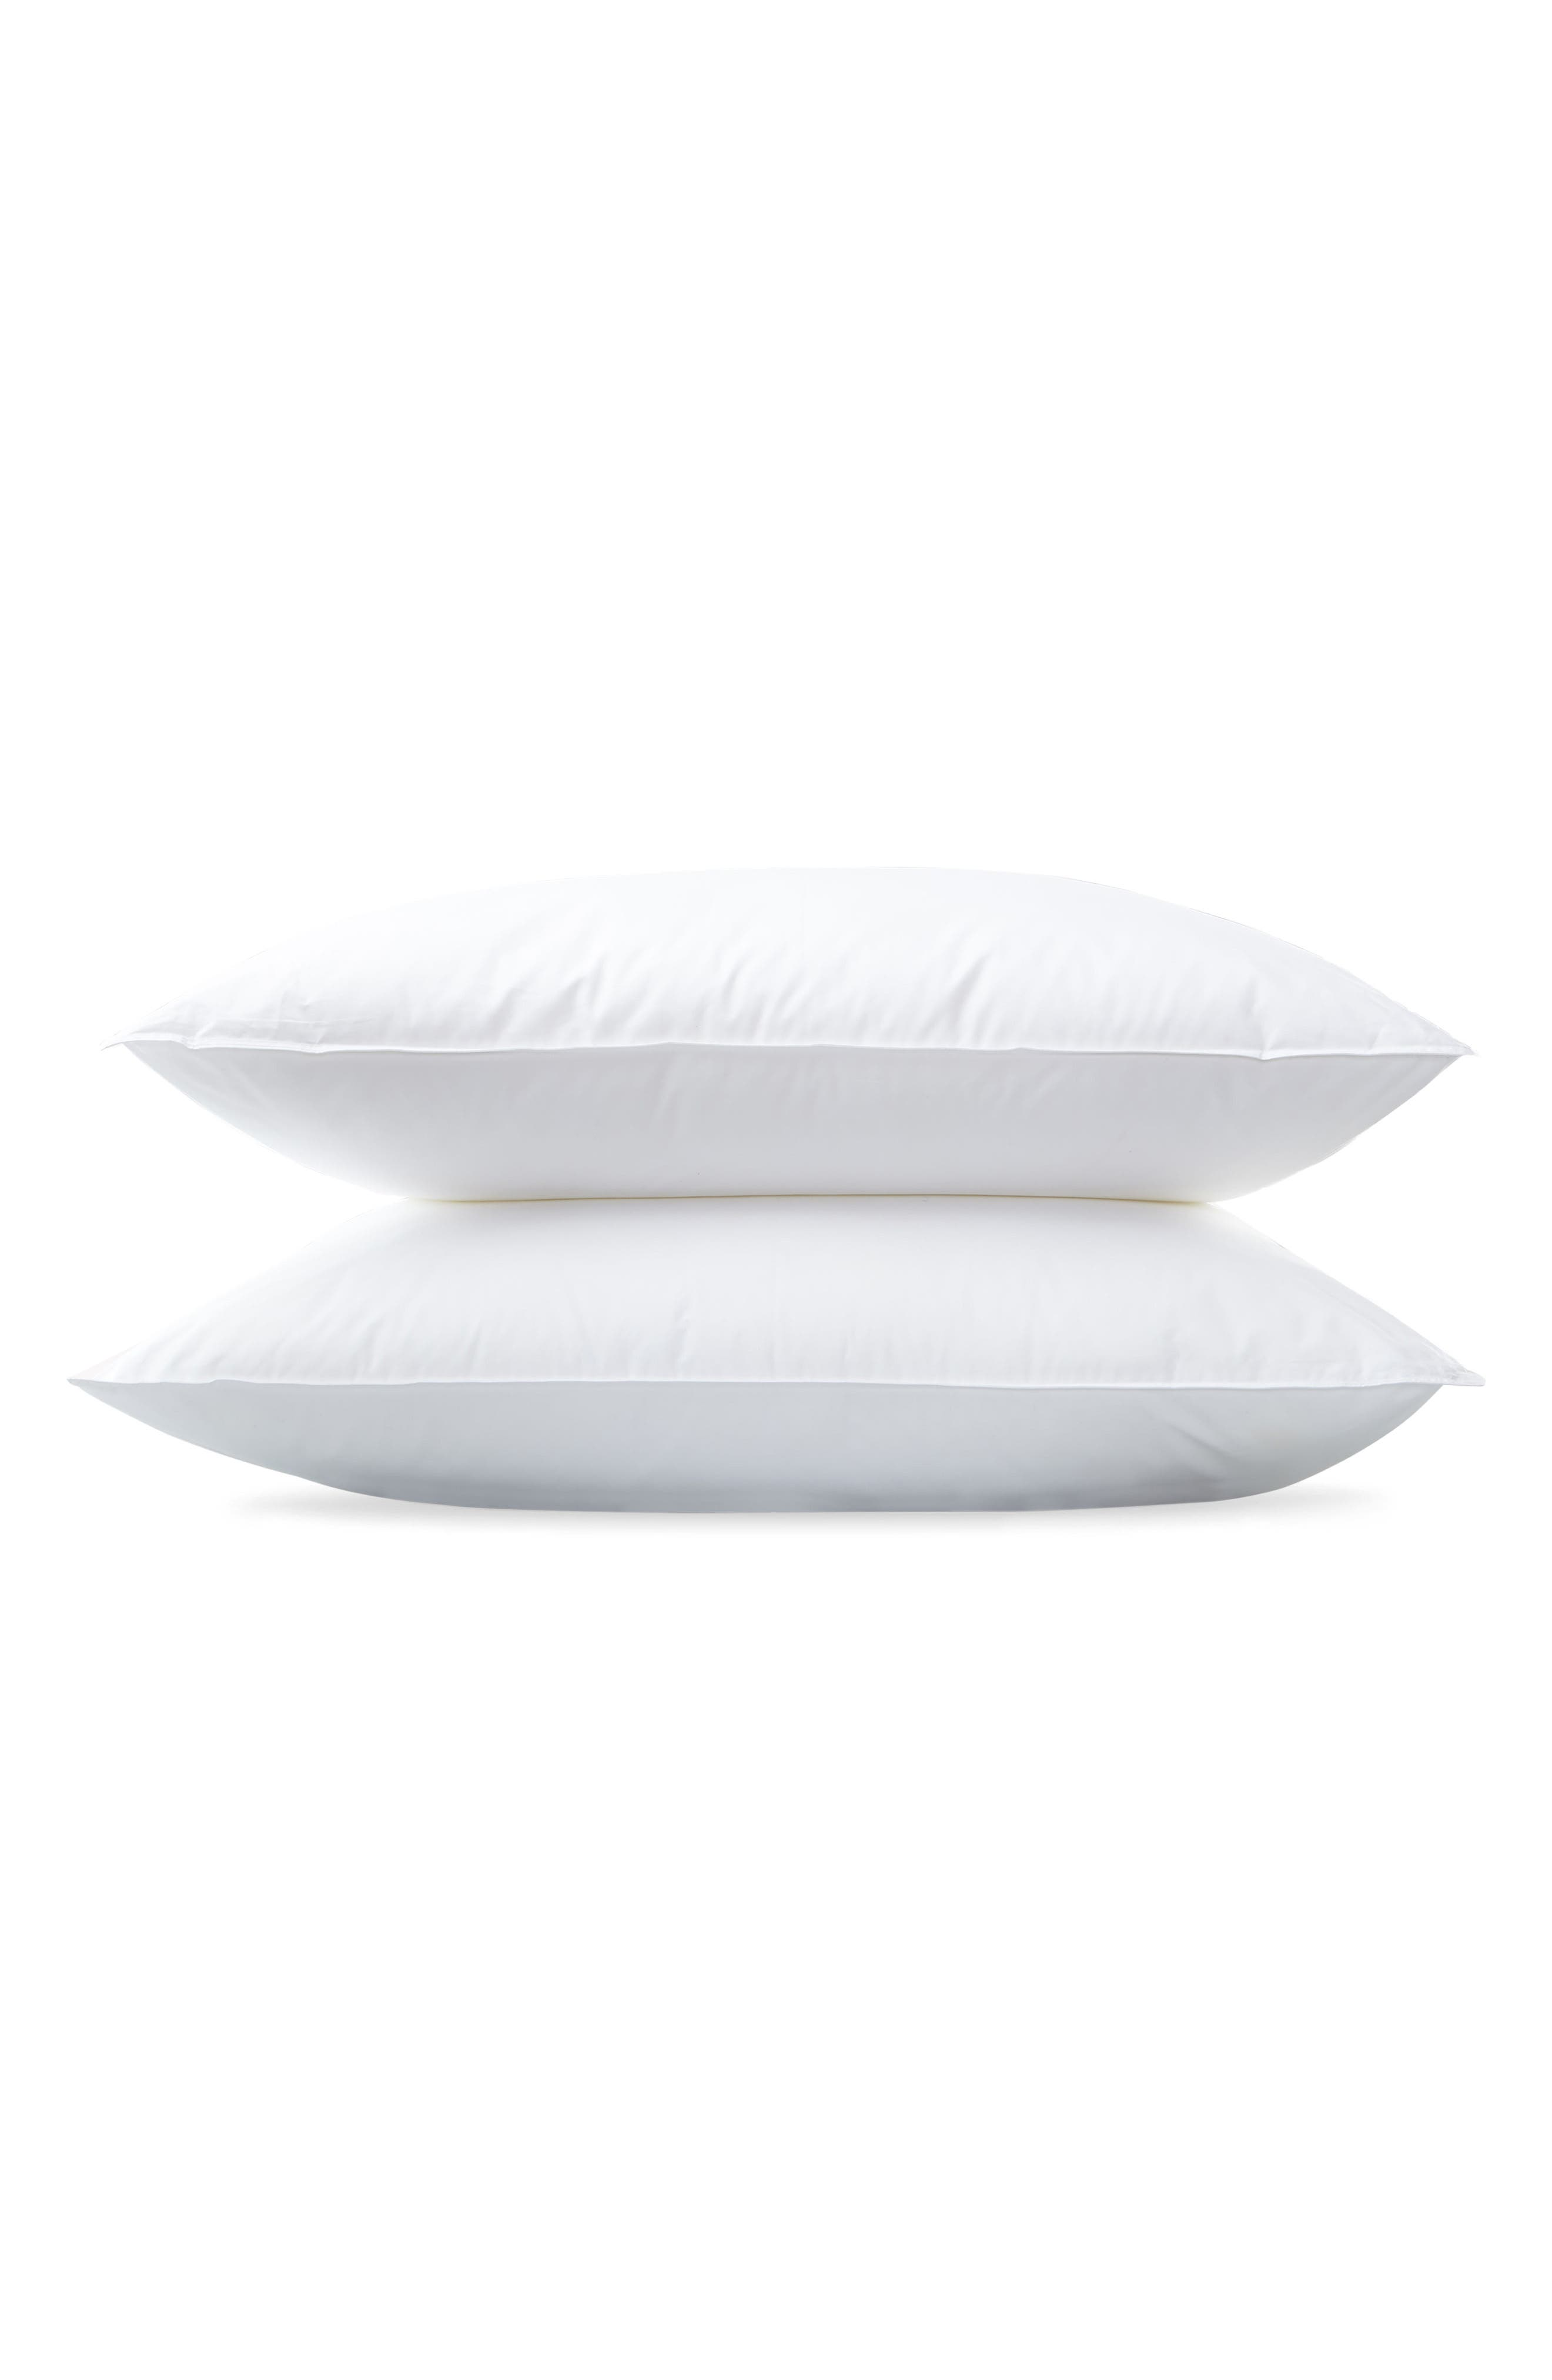 Montreux Three-Chamber 600 Fill Power Down & Feather 280 Thread Count Pillow,                             Main thumbnail 1, color,                             WHITE